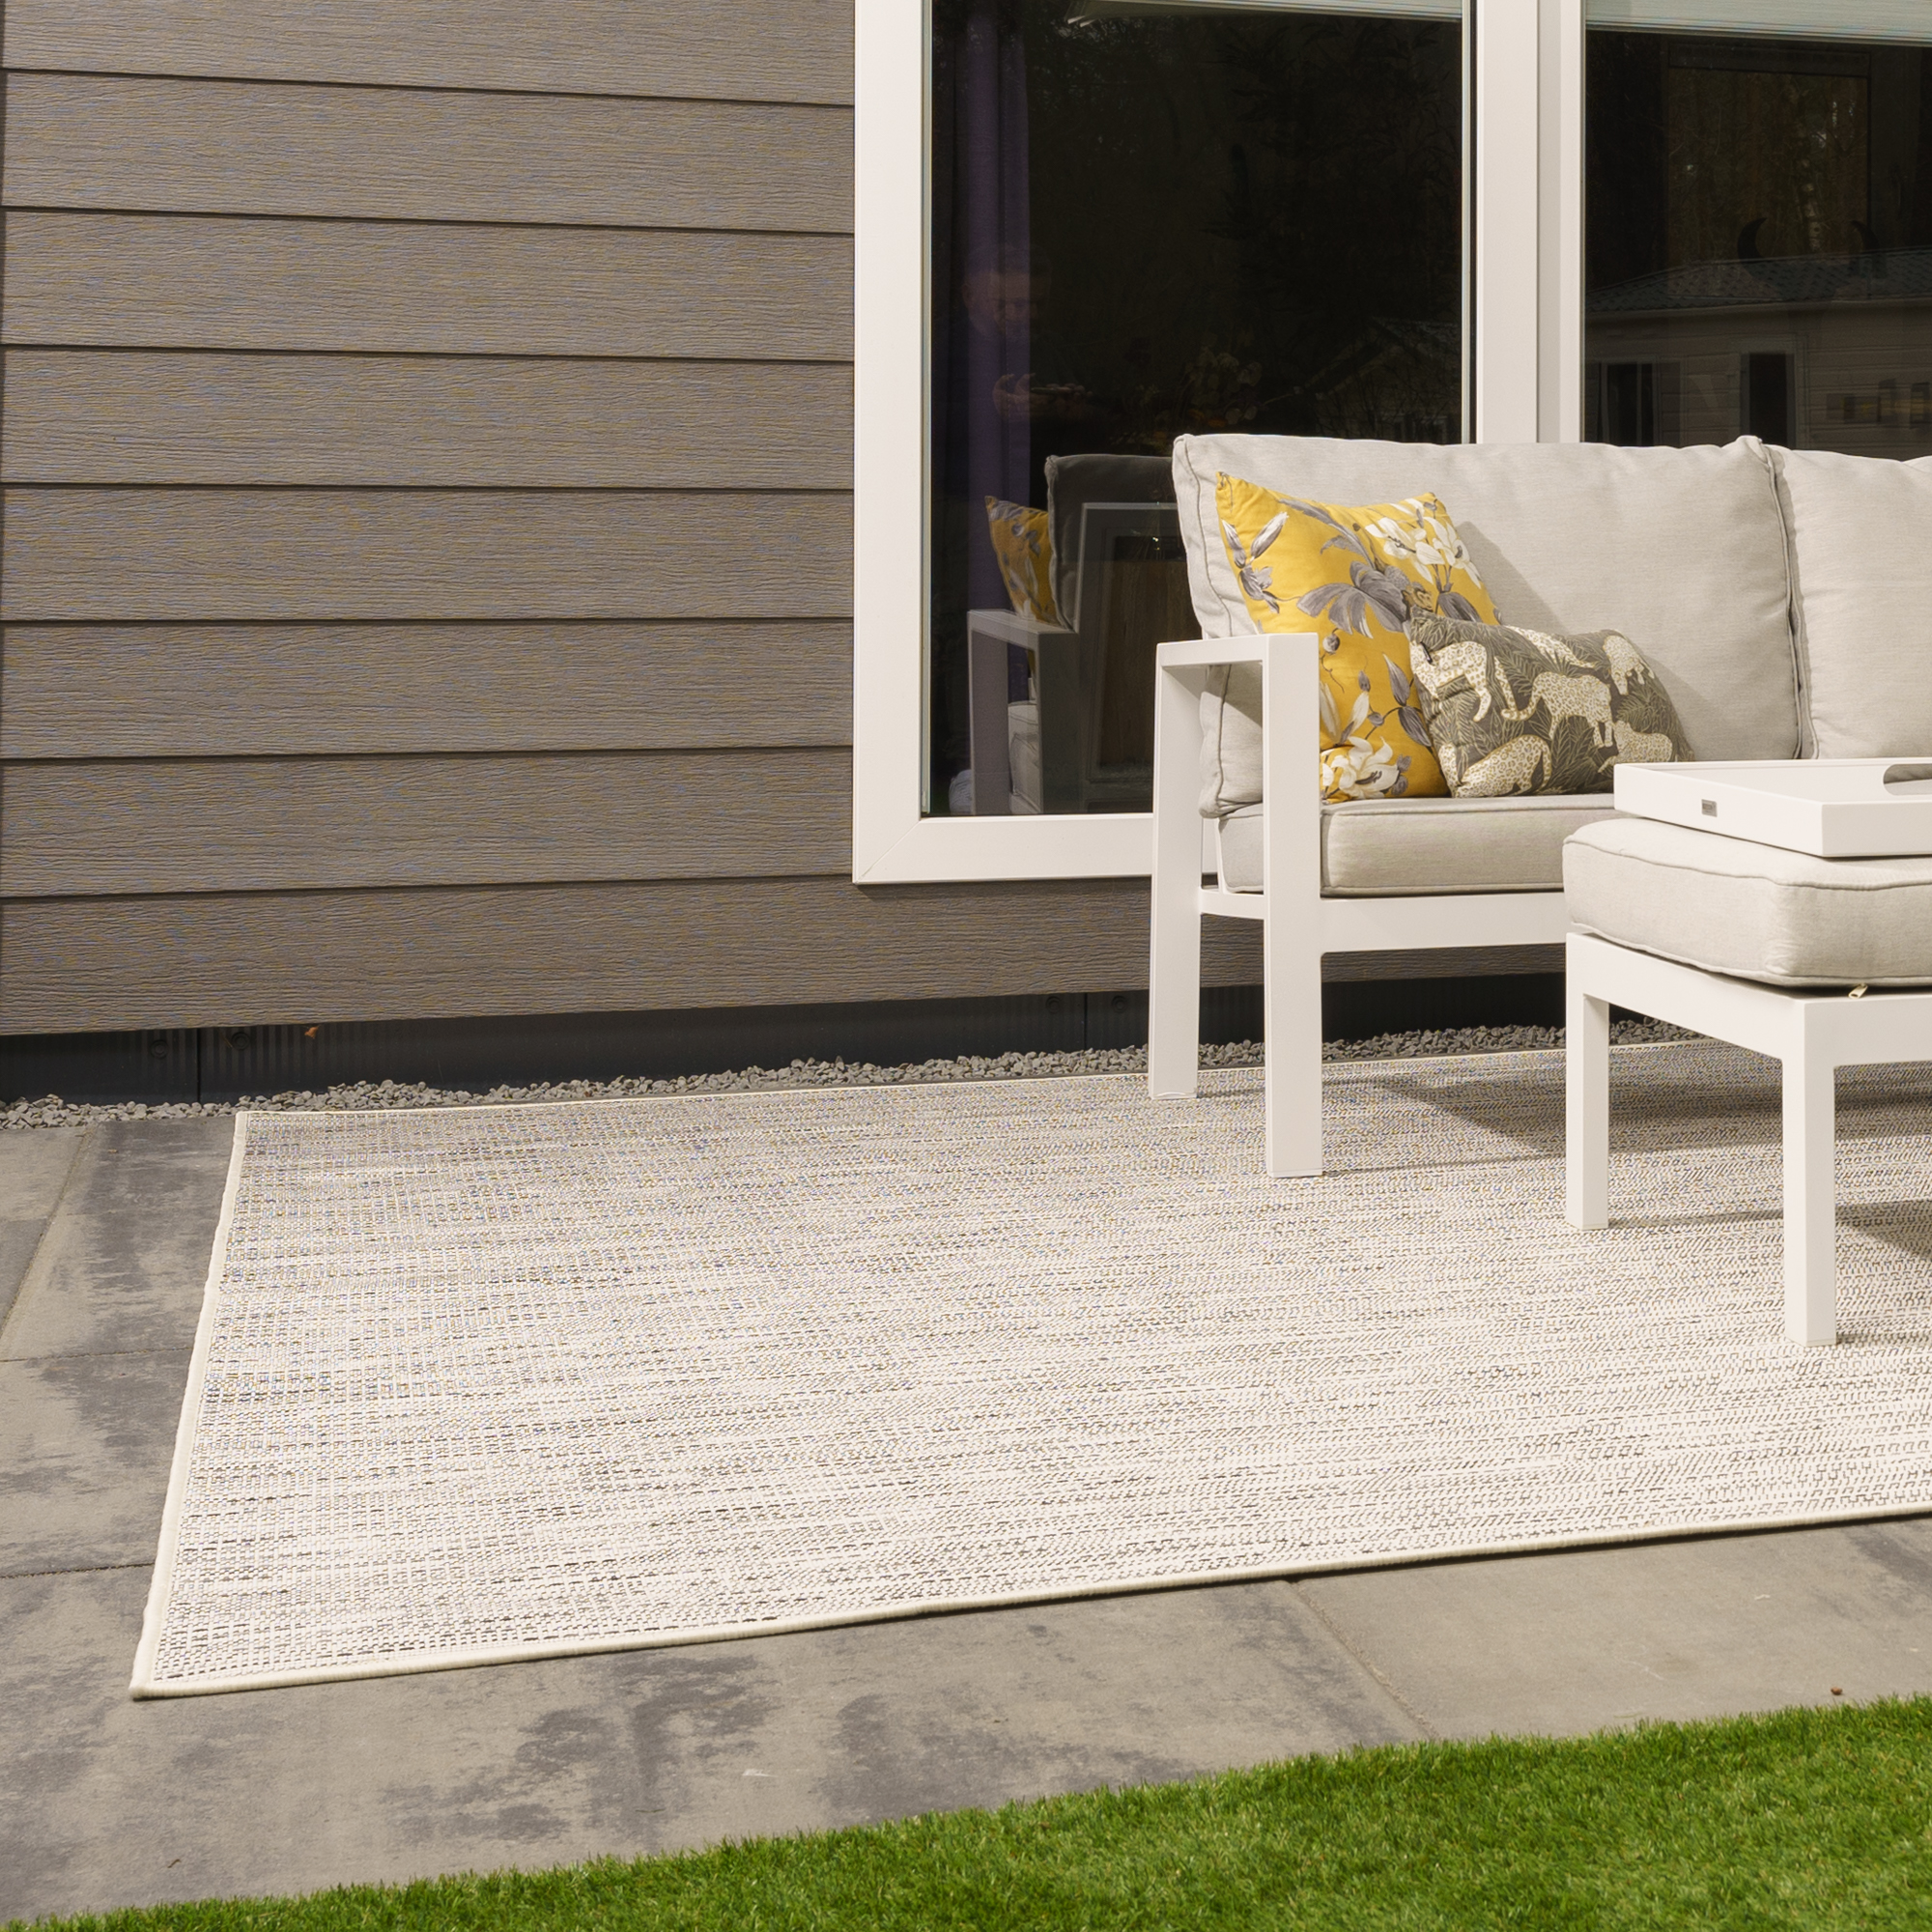 Vloerkleed Xilento Outdoor 4001-21